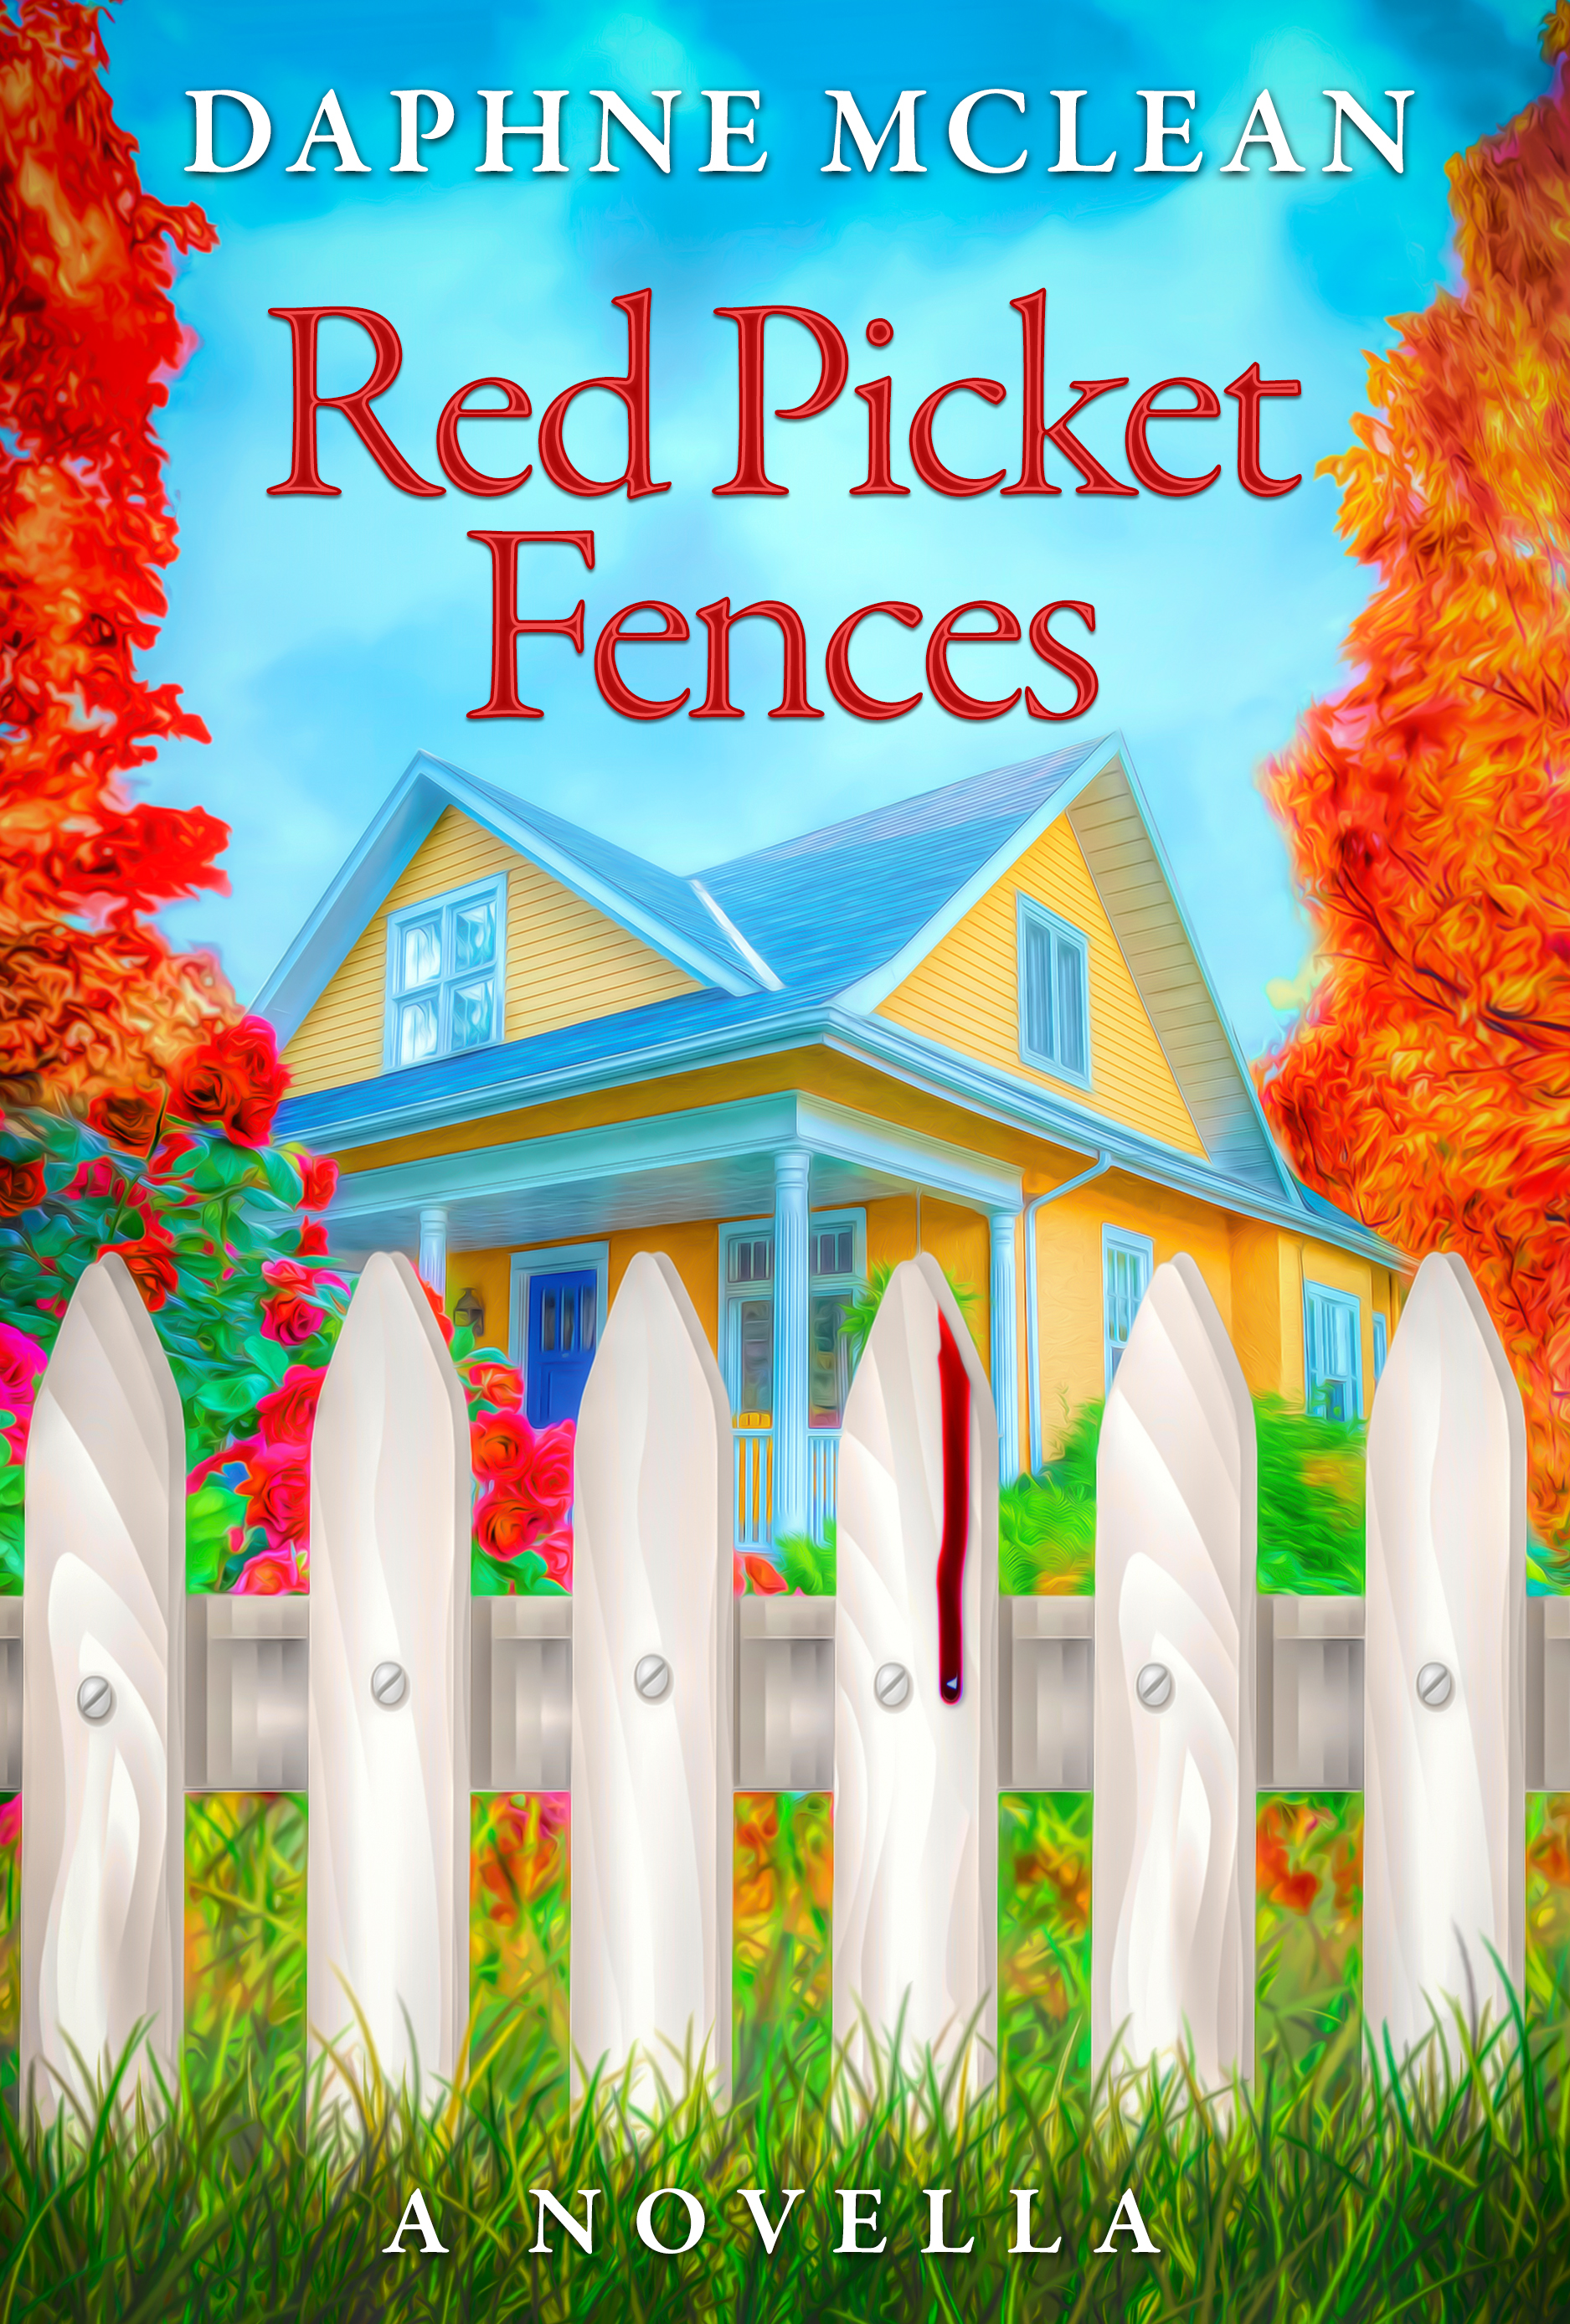 RedPicketFences_1